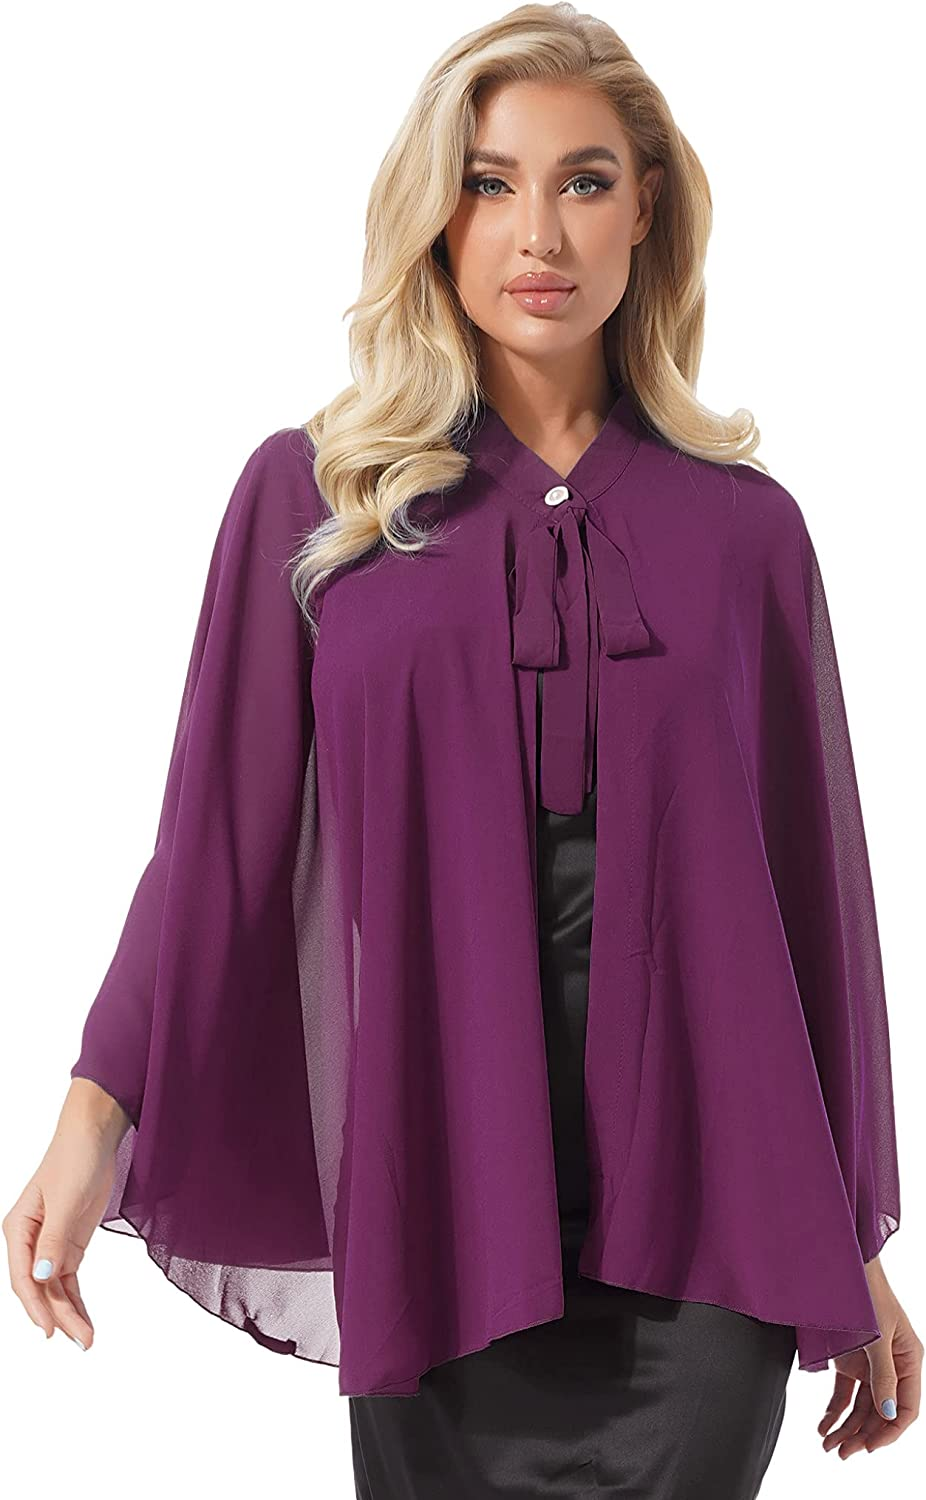 XUNZOO Women's Dressy Poncho Lightweight Tie Up Semi Sheer Formal Shrug Overlay Shawl Cover Up Top